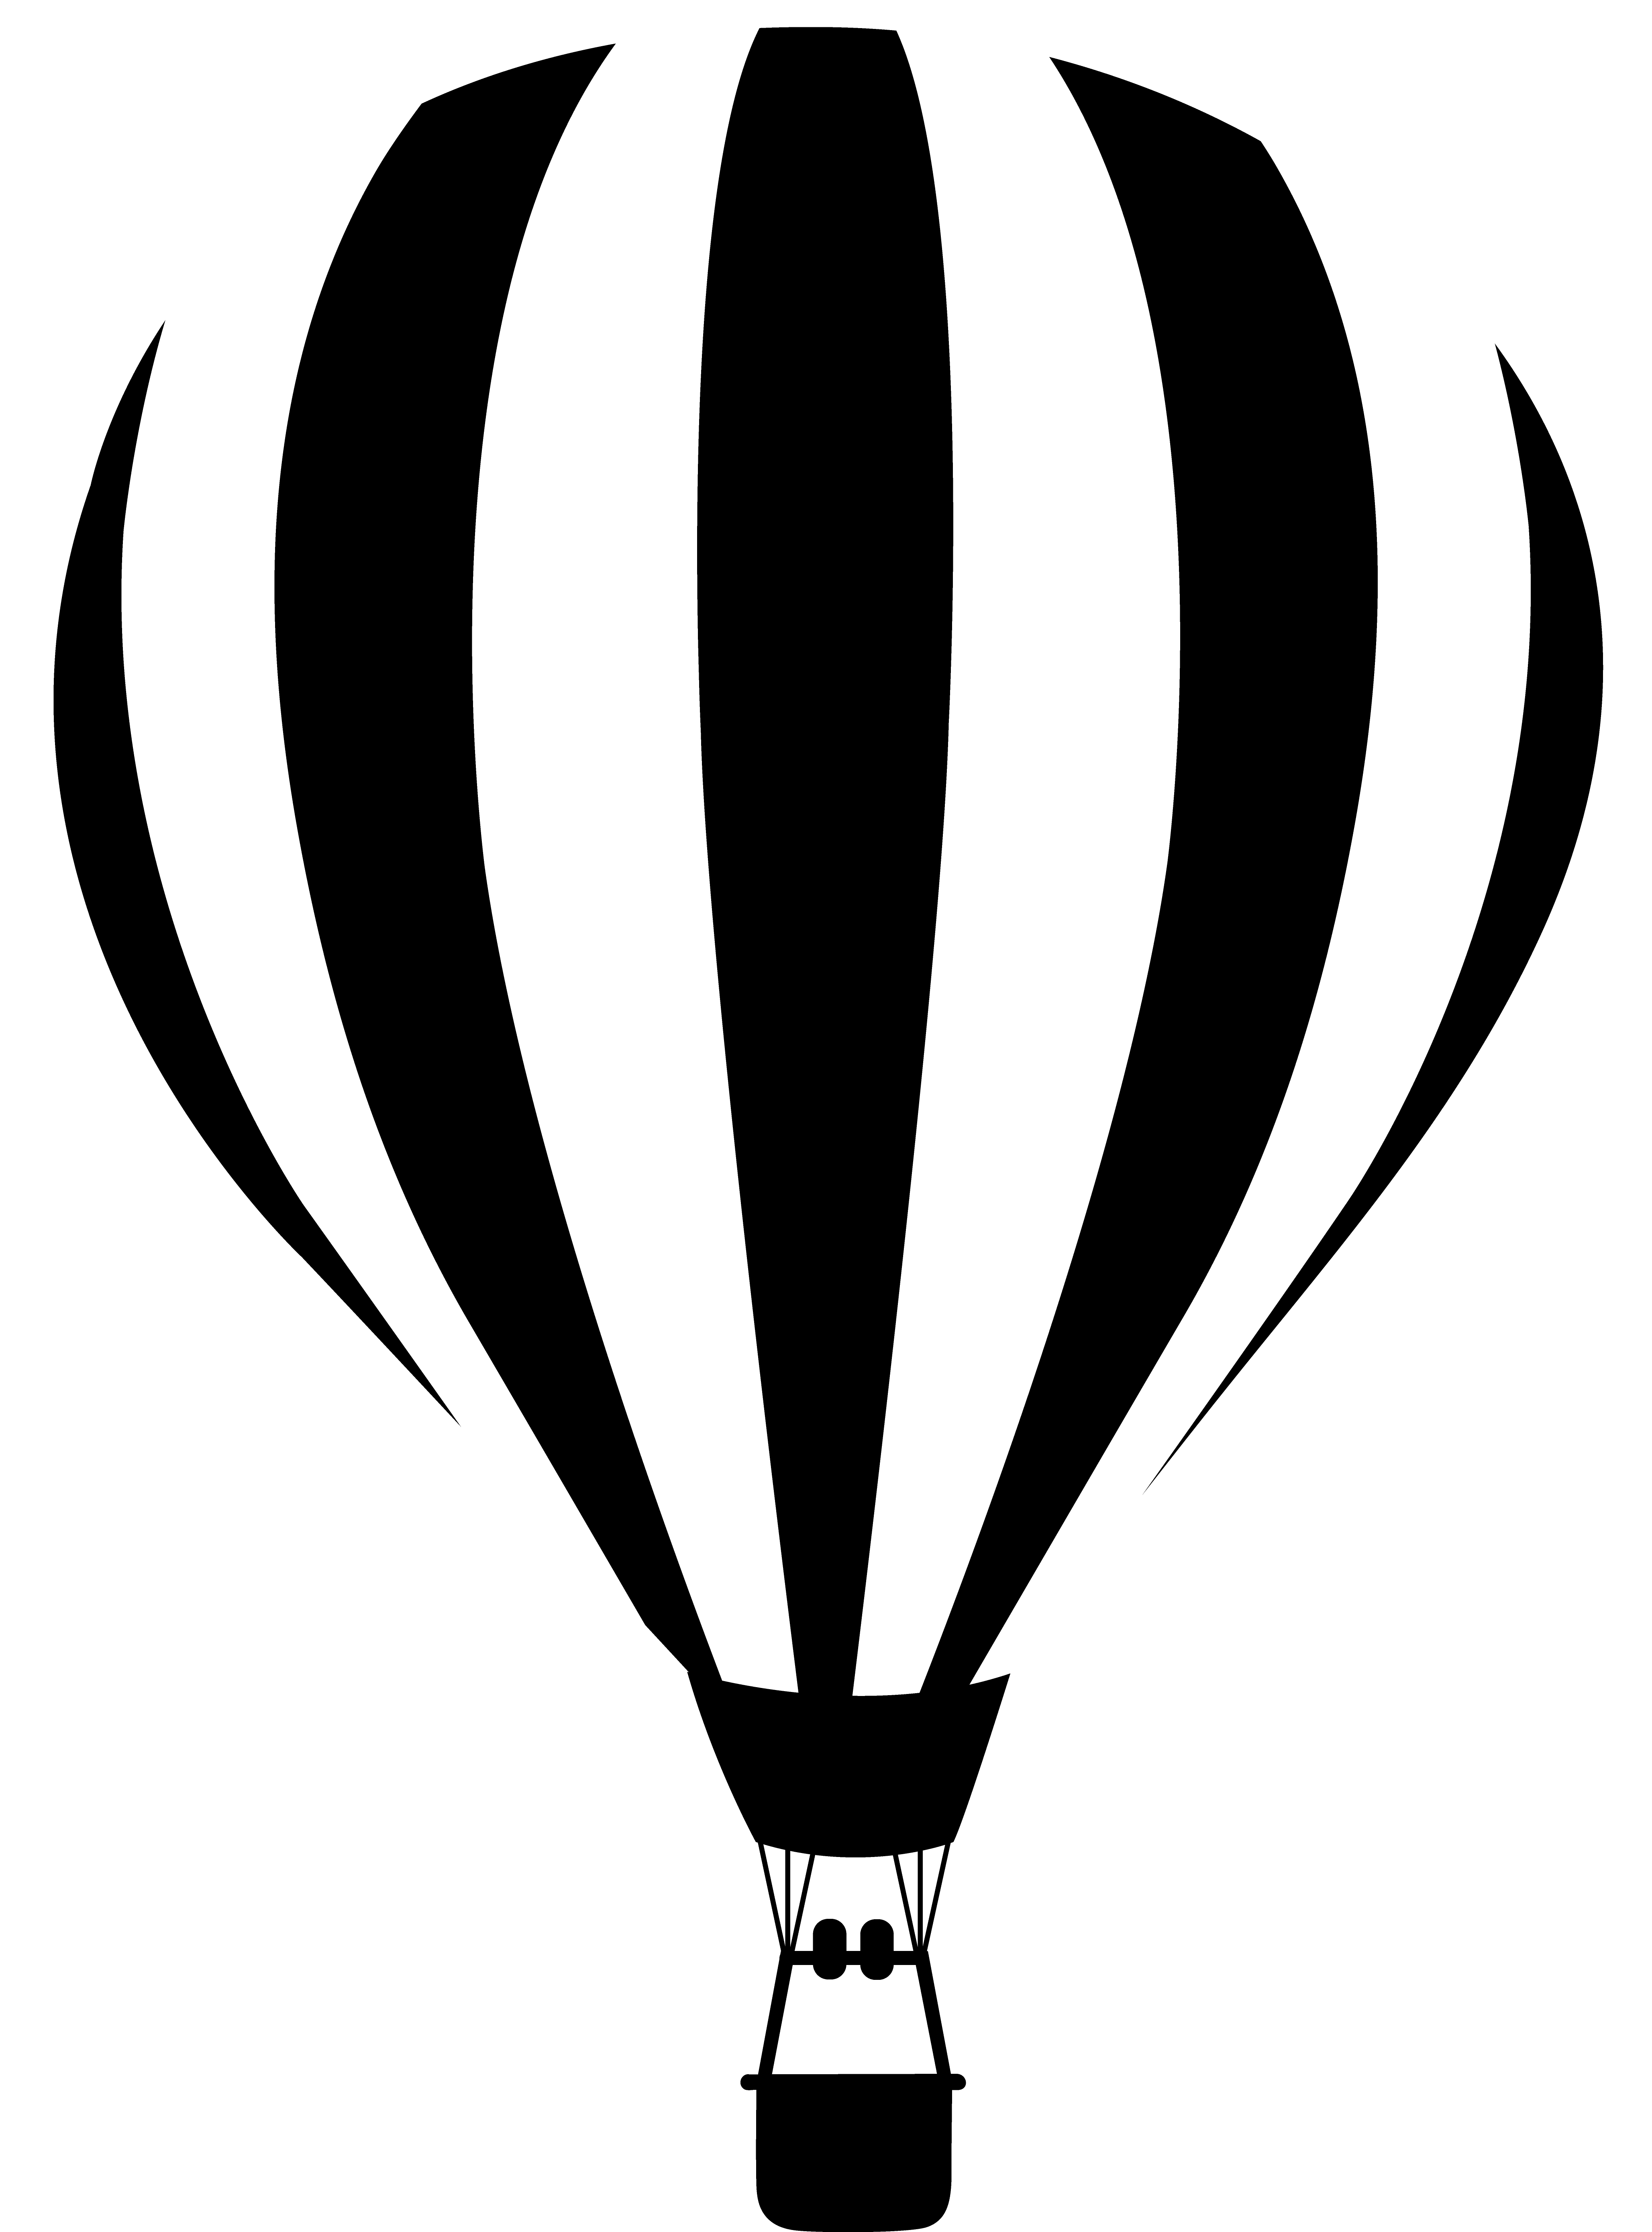 Printable coloring pages hot air balloons - Black And White Silhouette Images Black And White Striped Hot Air Balloon